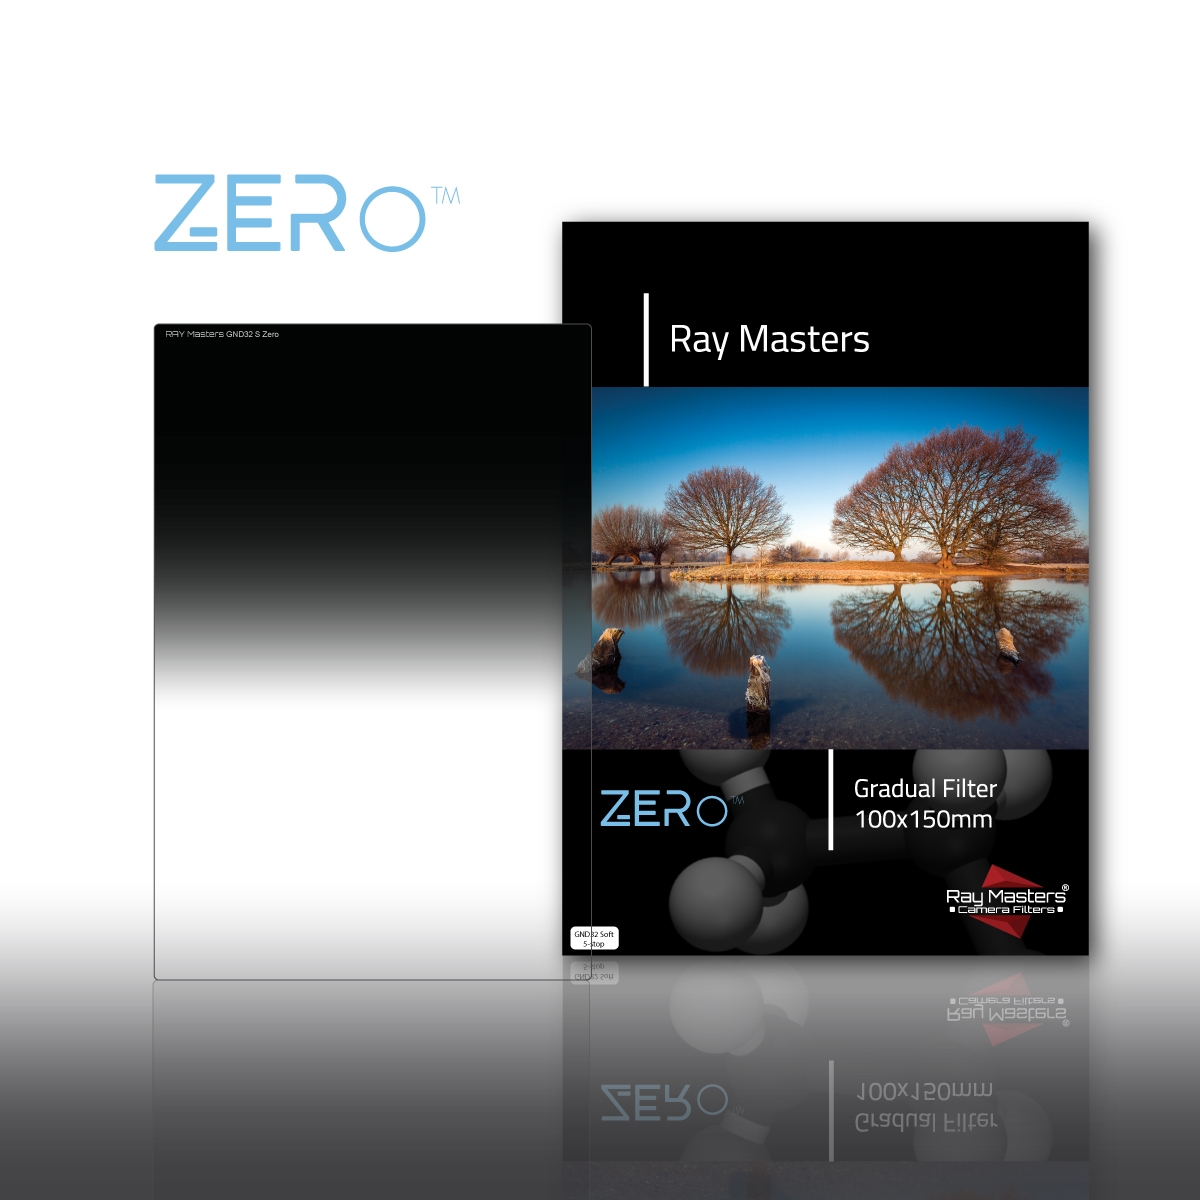 RAY MASTERS filtr ND32 Soft Zero 100x150 mm